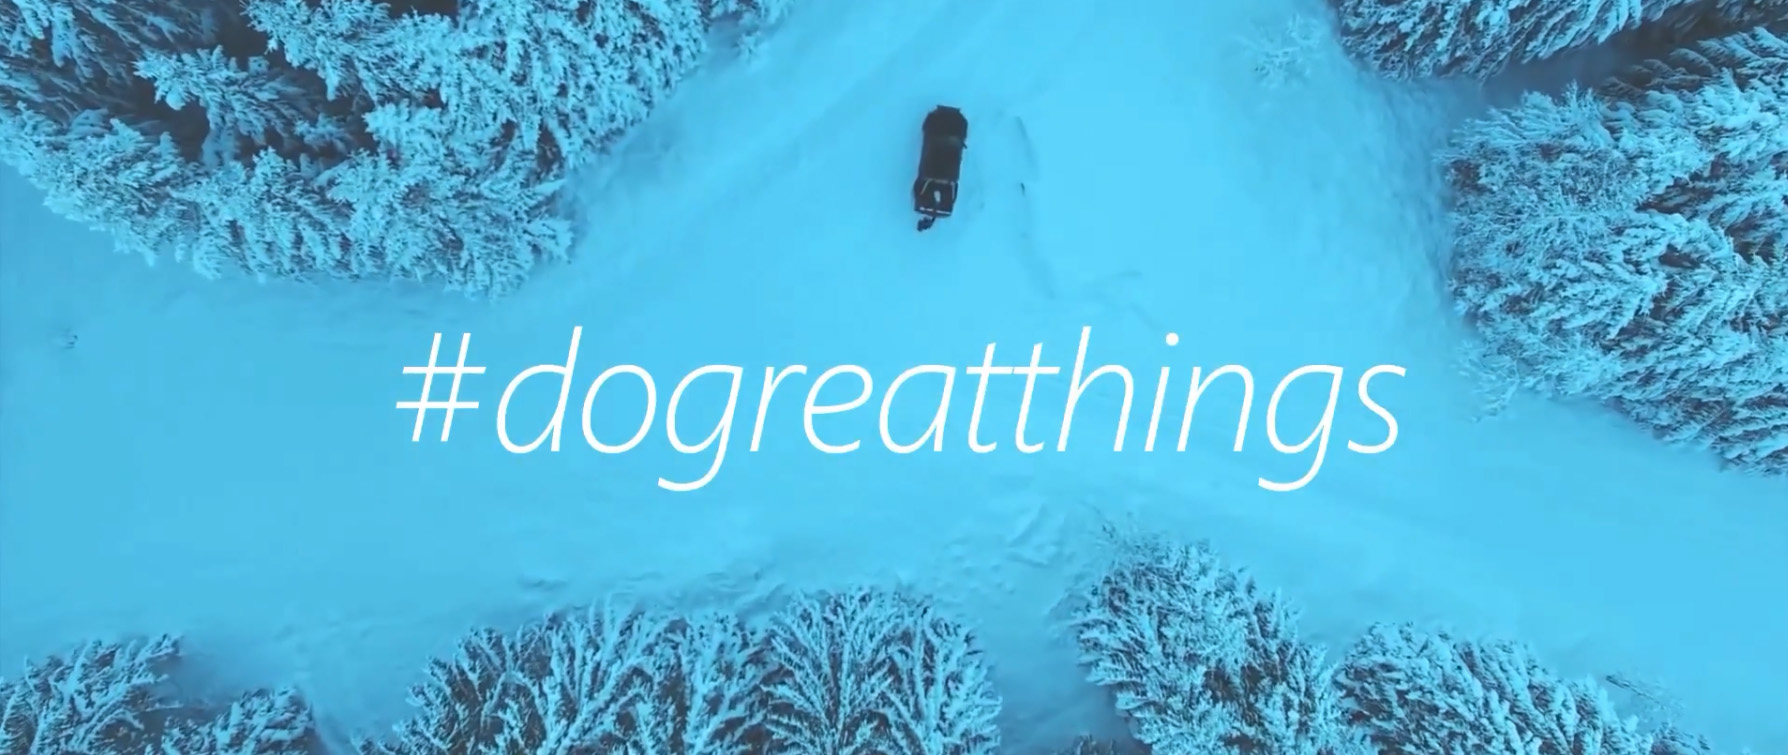 dogreatthings